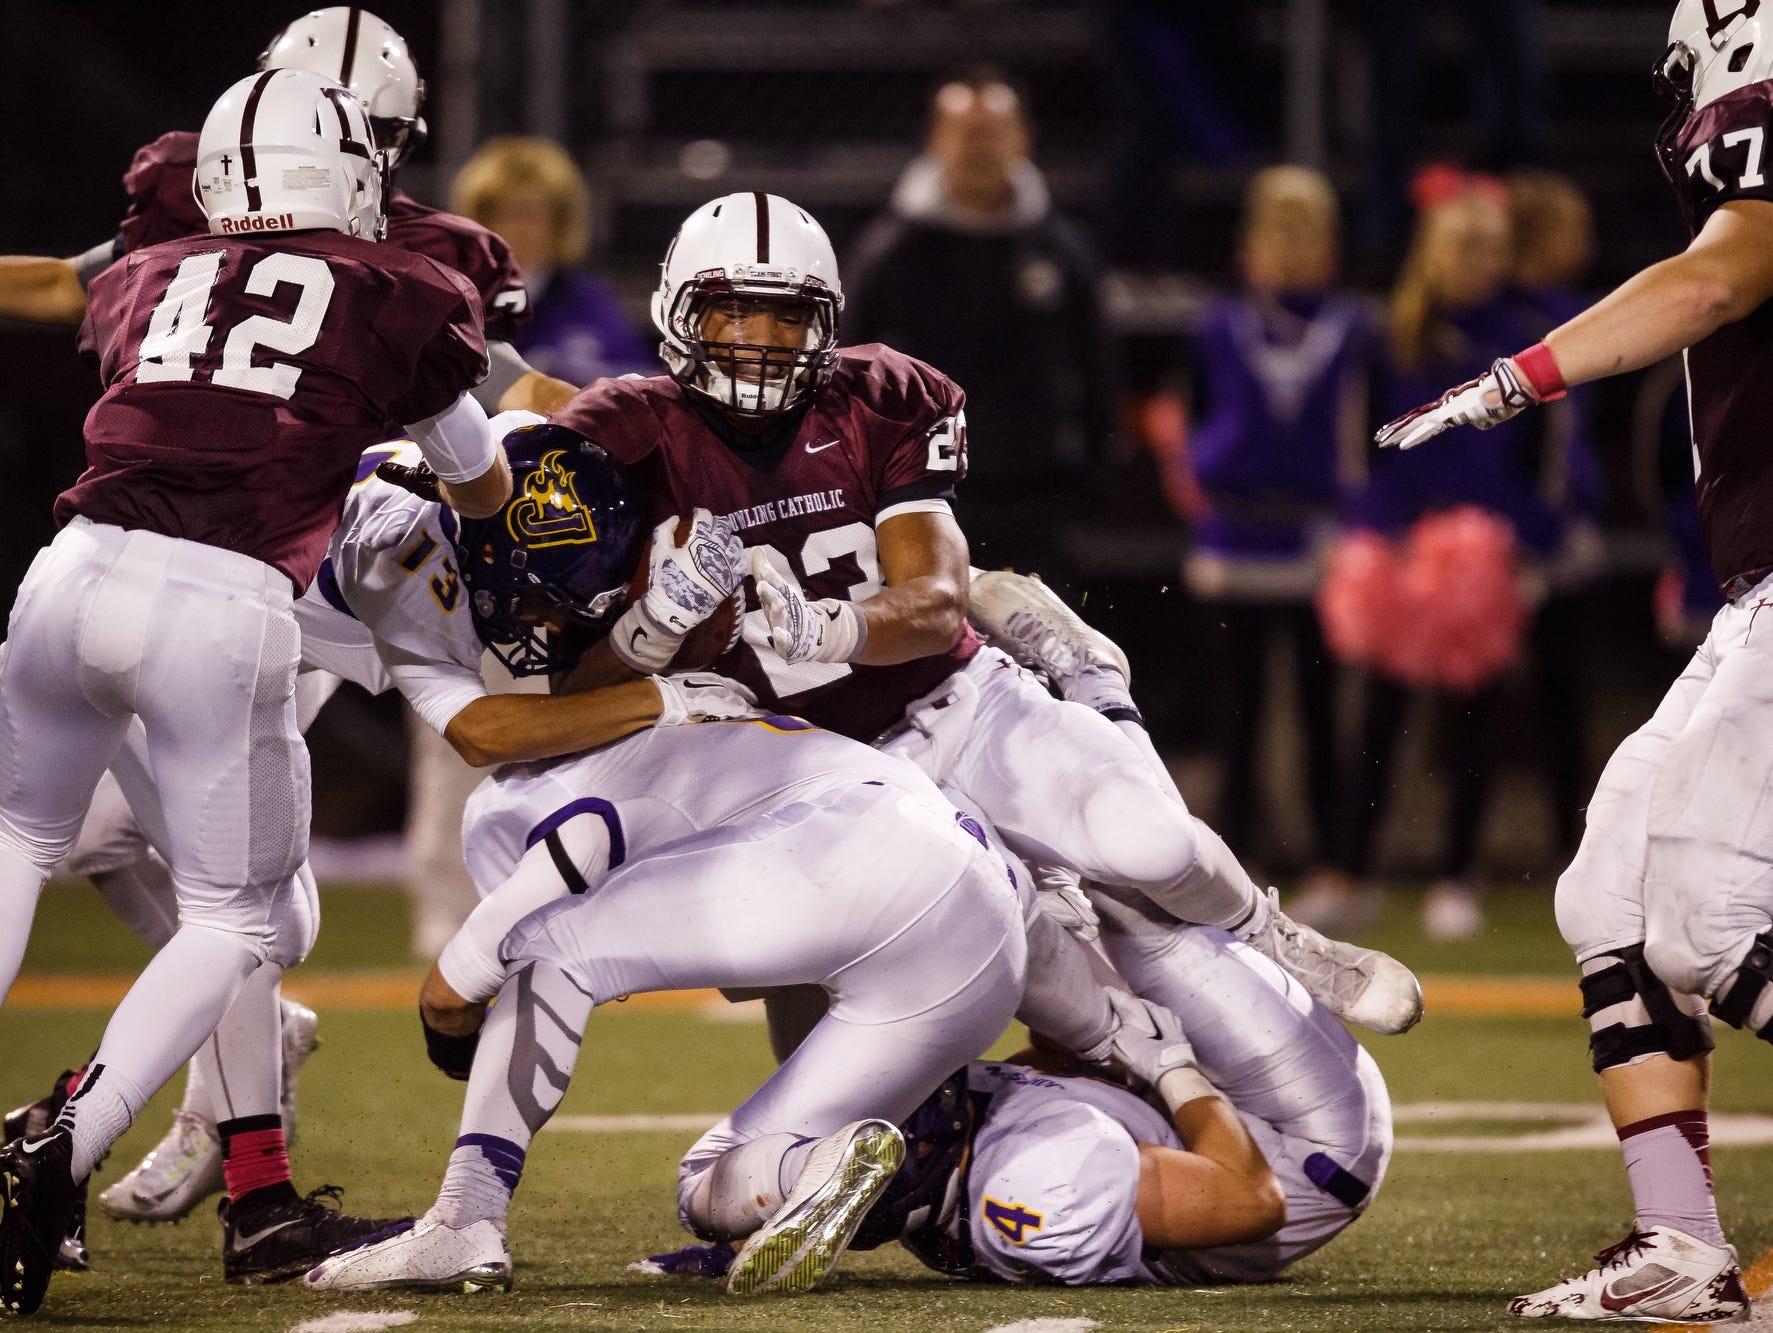 Dowling Catholic's Jacob Zachary leans for extra yardage during their game their game against Johnston at Valley Stadium in West Des Moines on Friday, October 9, 2015. Dowling Catholic would go on to win 35-15.